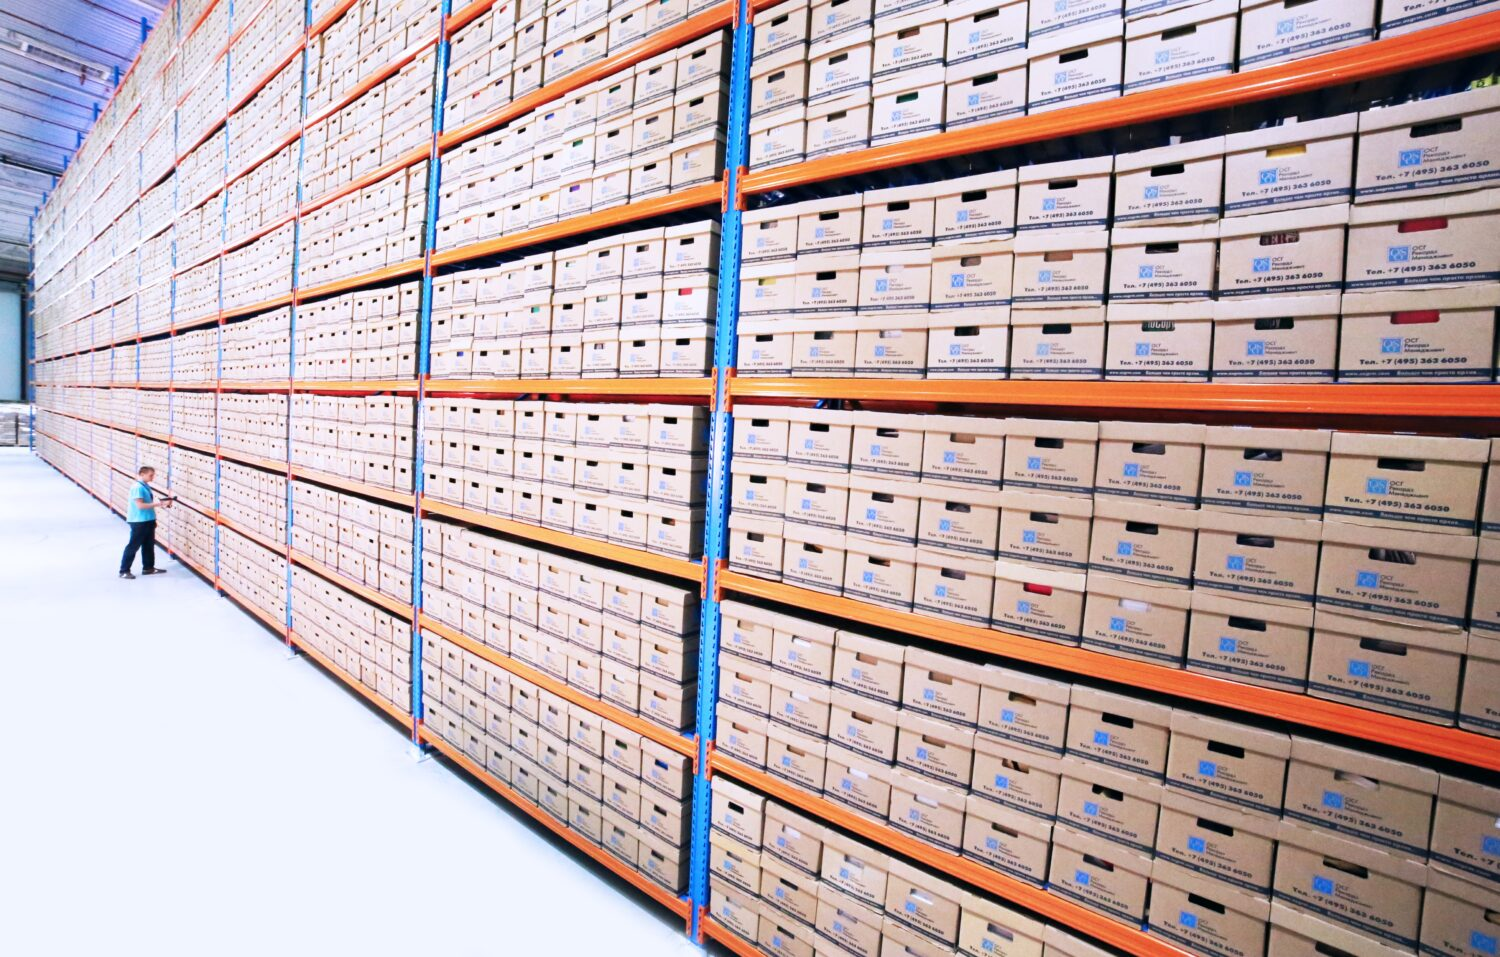 The key benefits of inventory management software